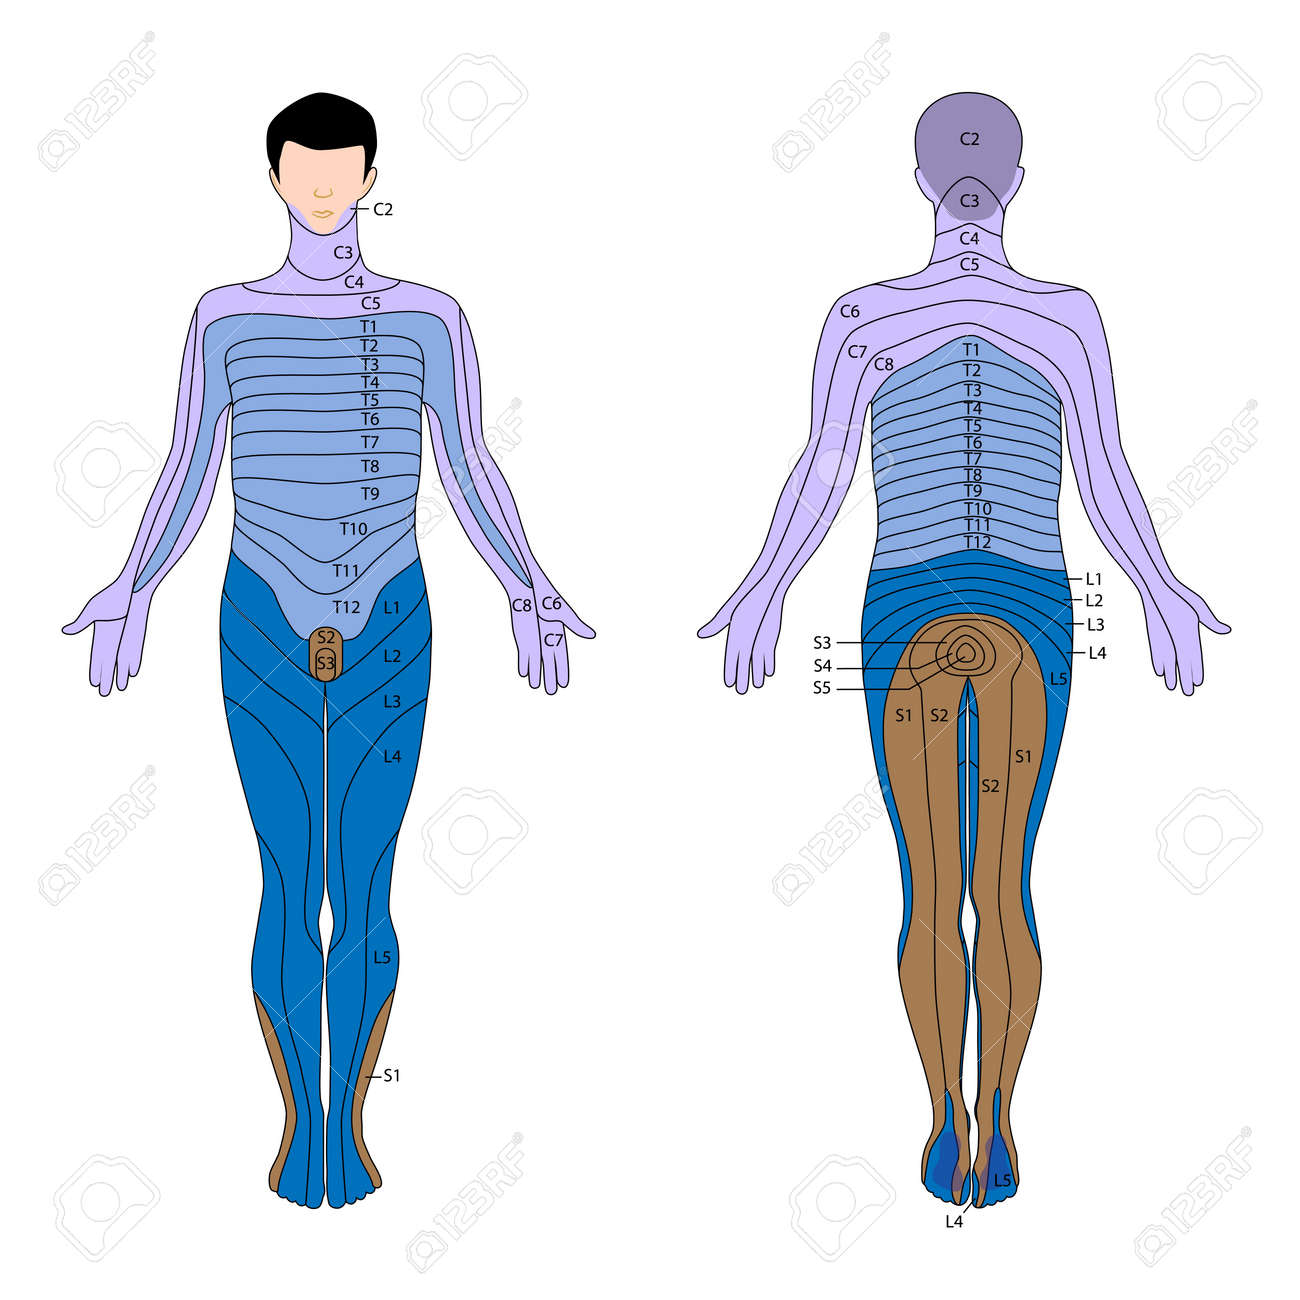 Dermatome Royalty Free Cliparts, Vectors, And Stock Illustration ...